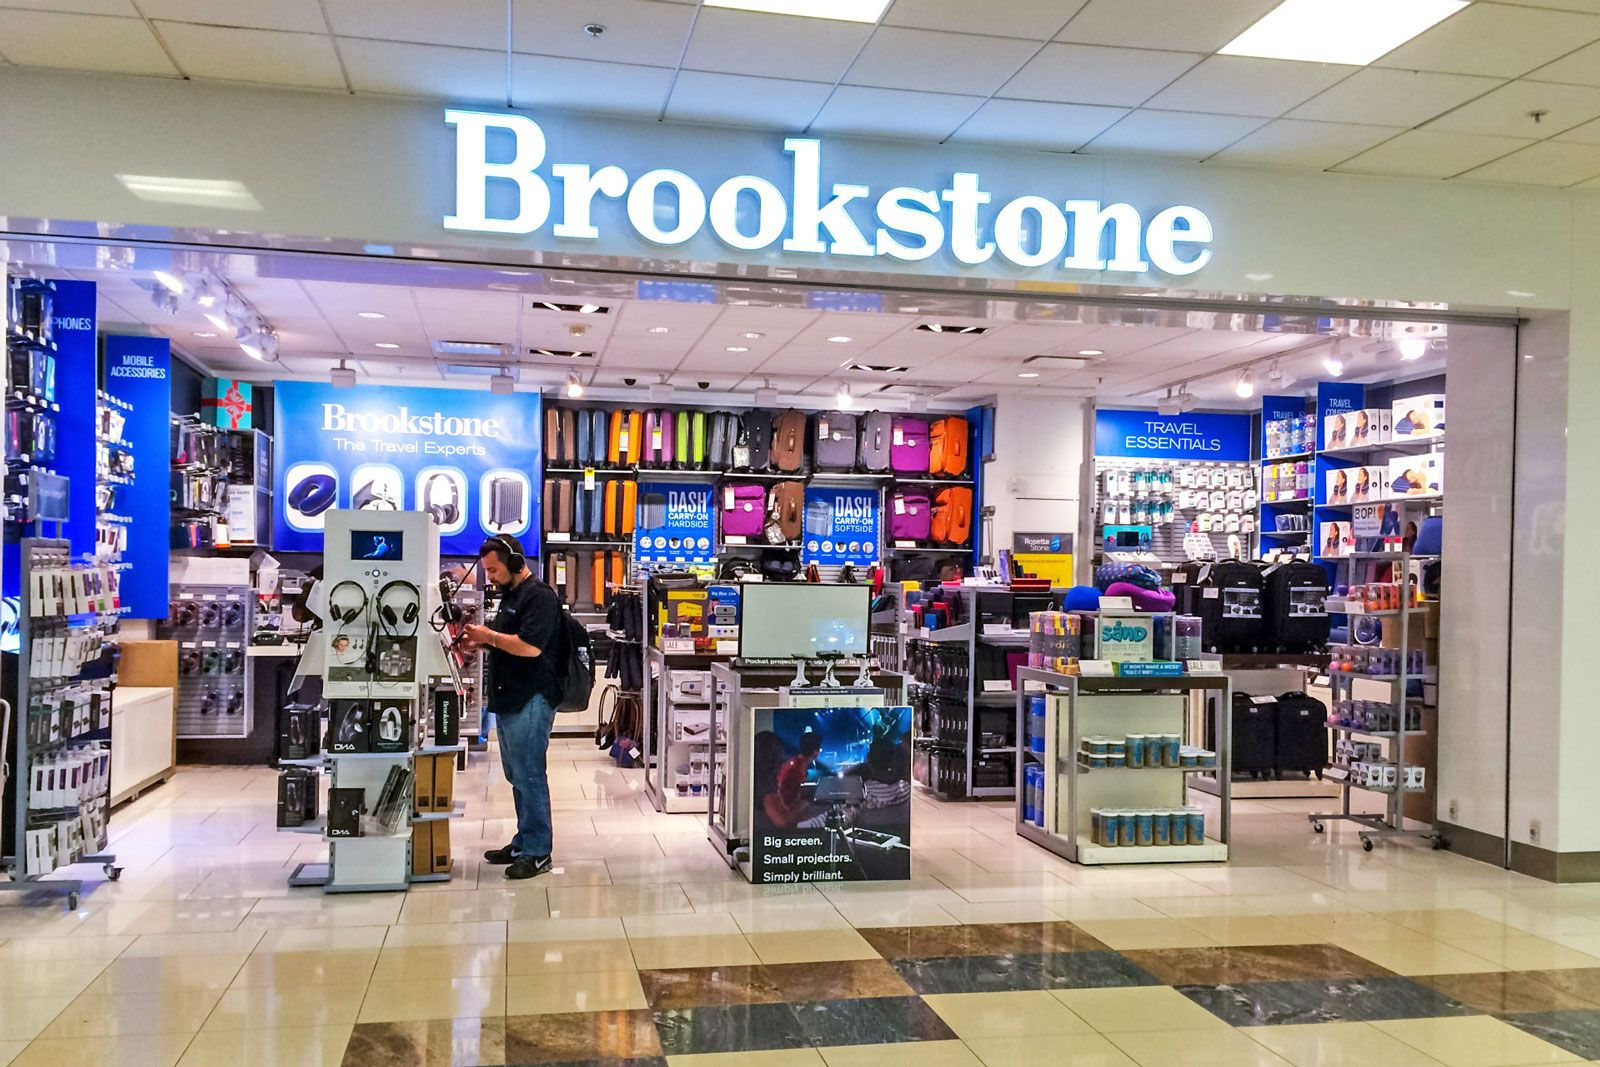 BROOKSTONE: Your one-stop destination for the very best new products in massage & personal care, home, travel, gifts, and more